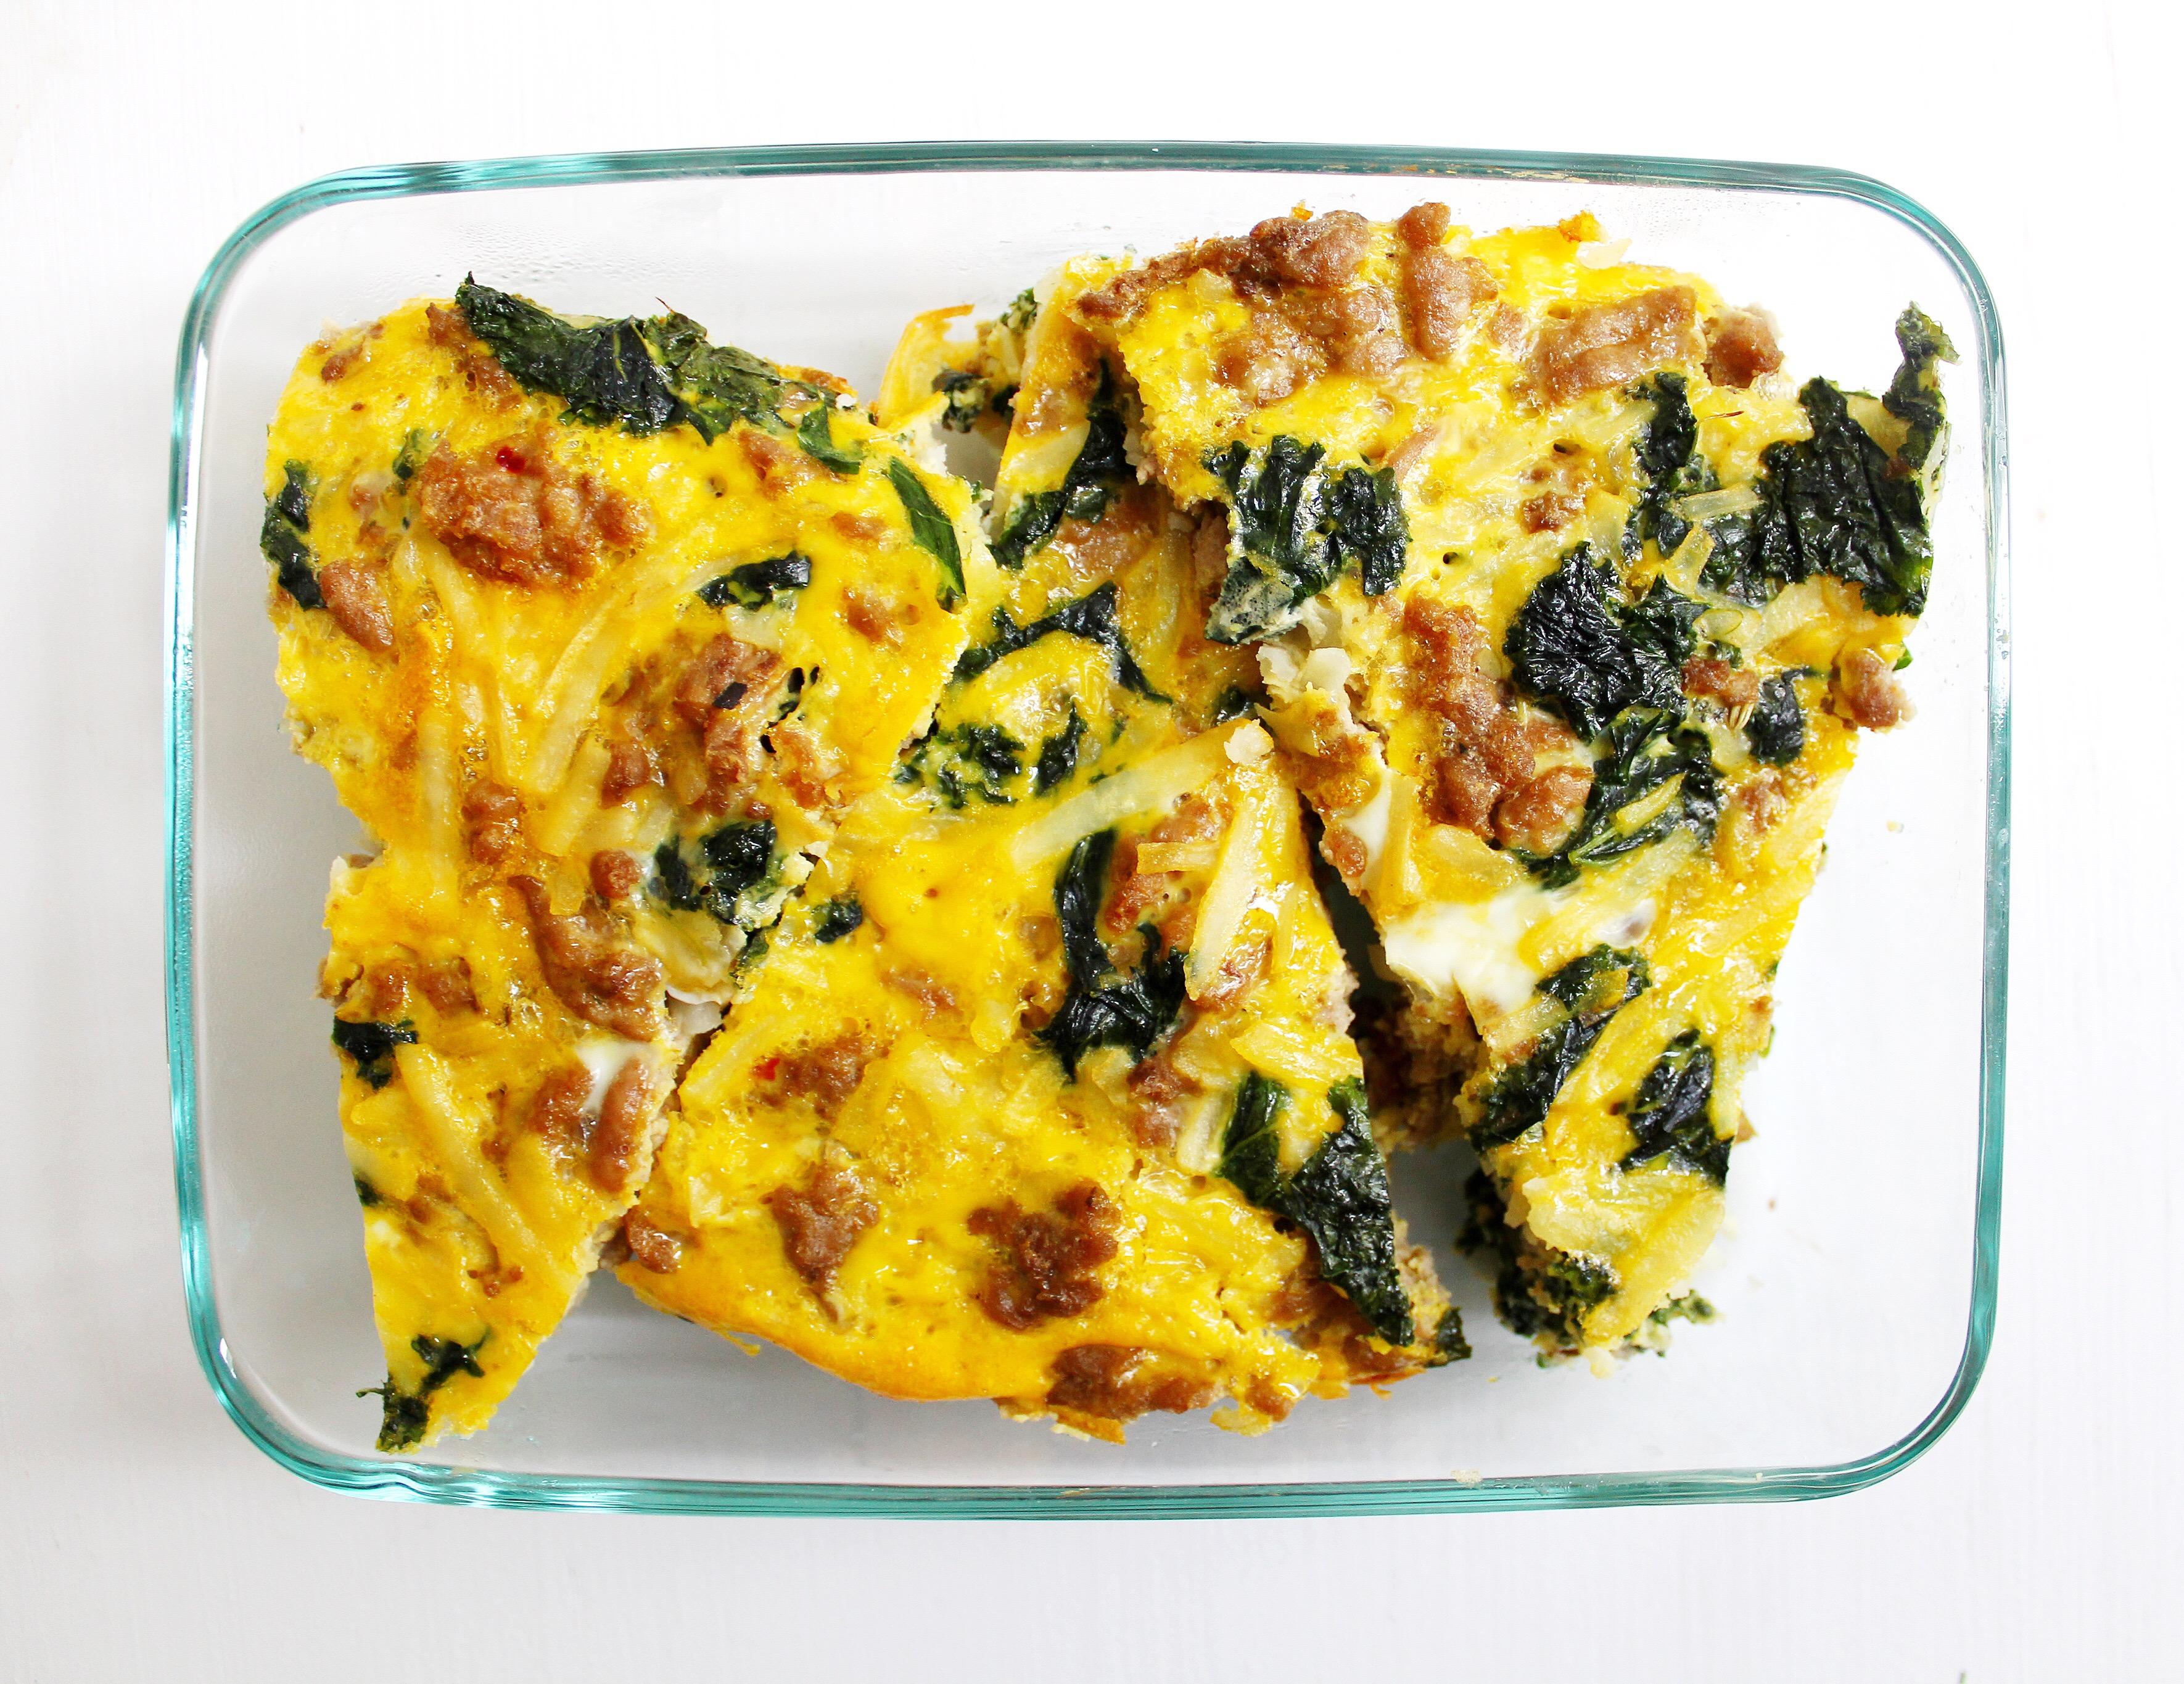 Turkey and Kale Breakfast Bake